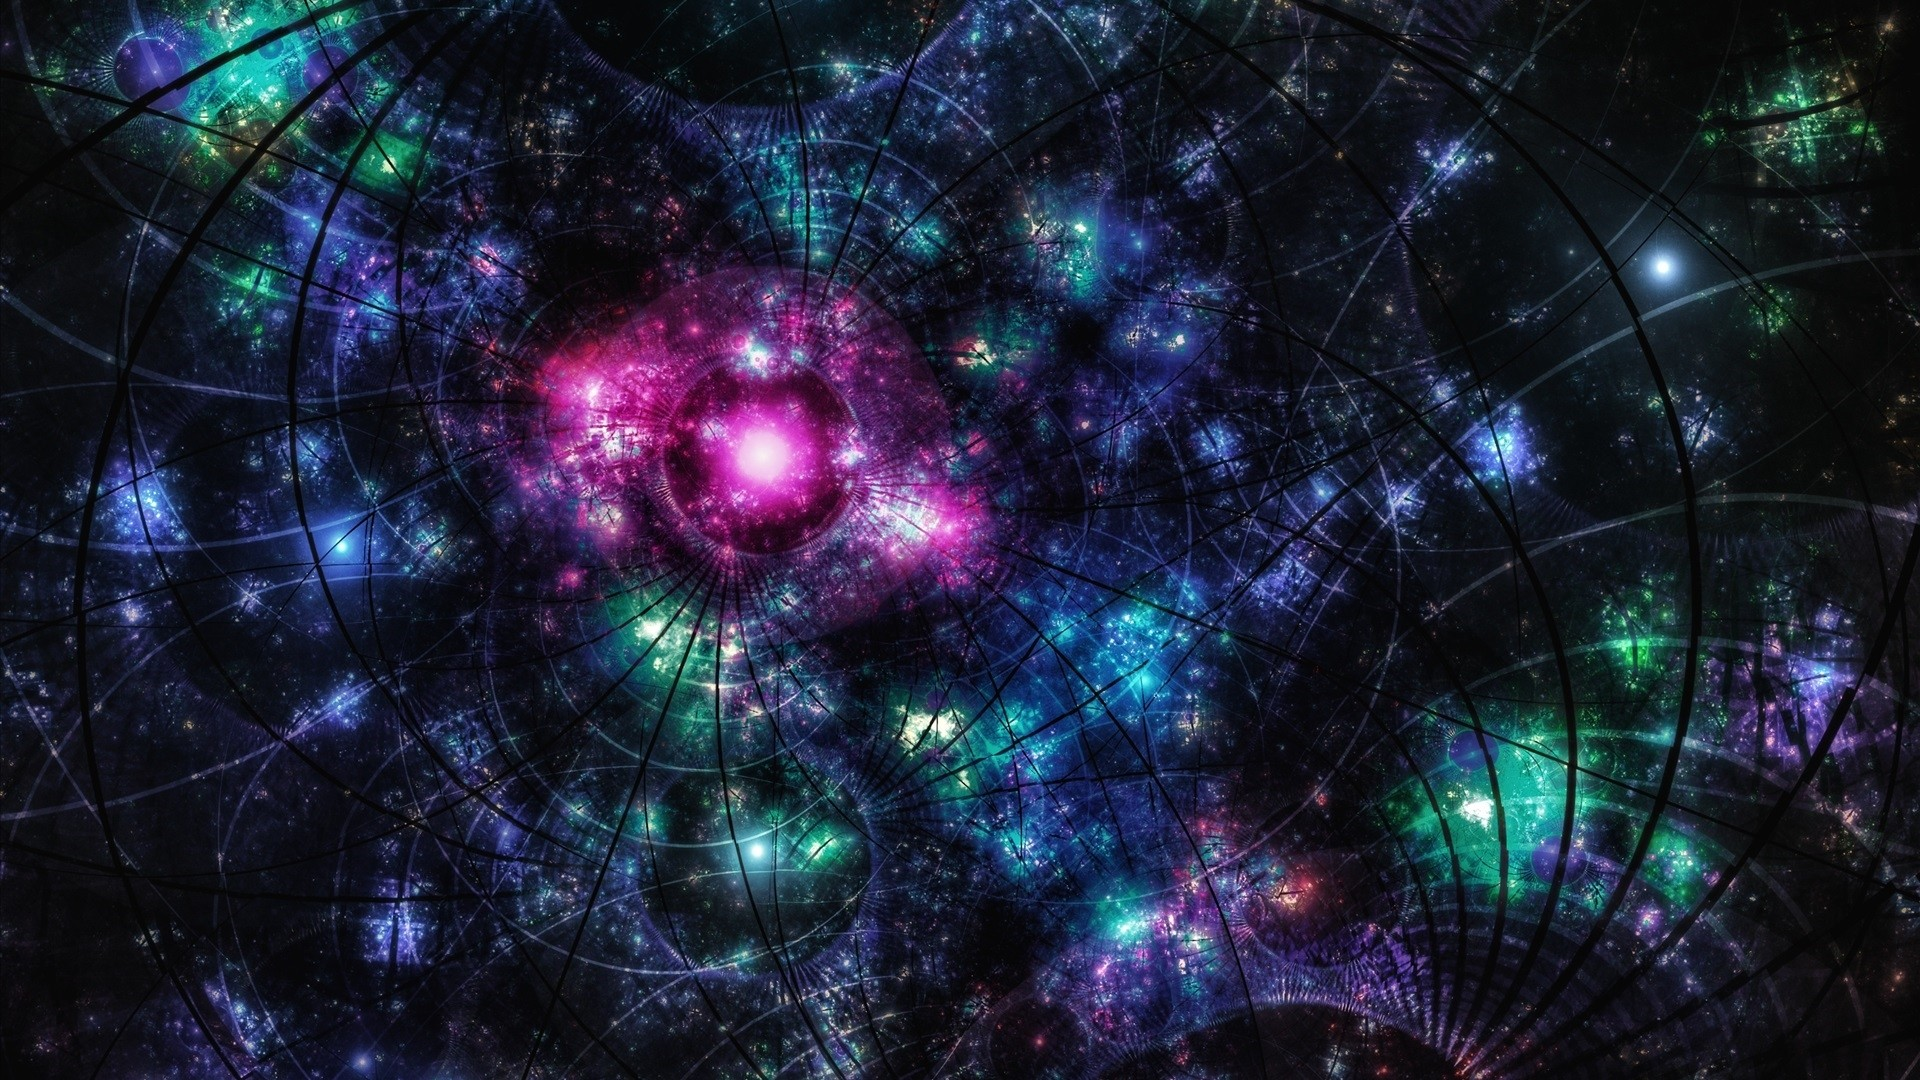 Abstract Space Wallpaper Picture hd